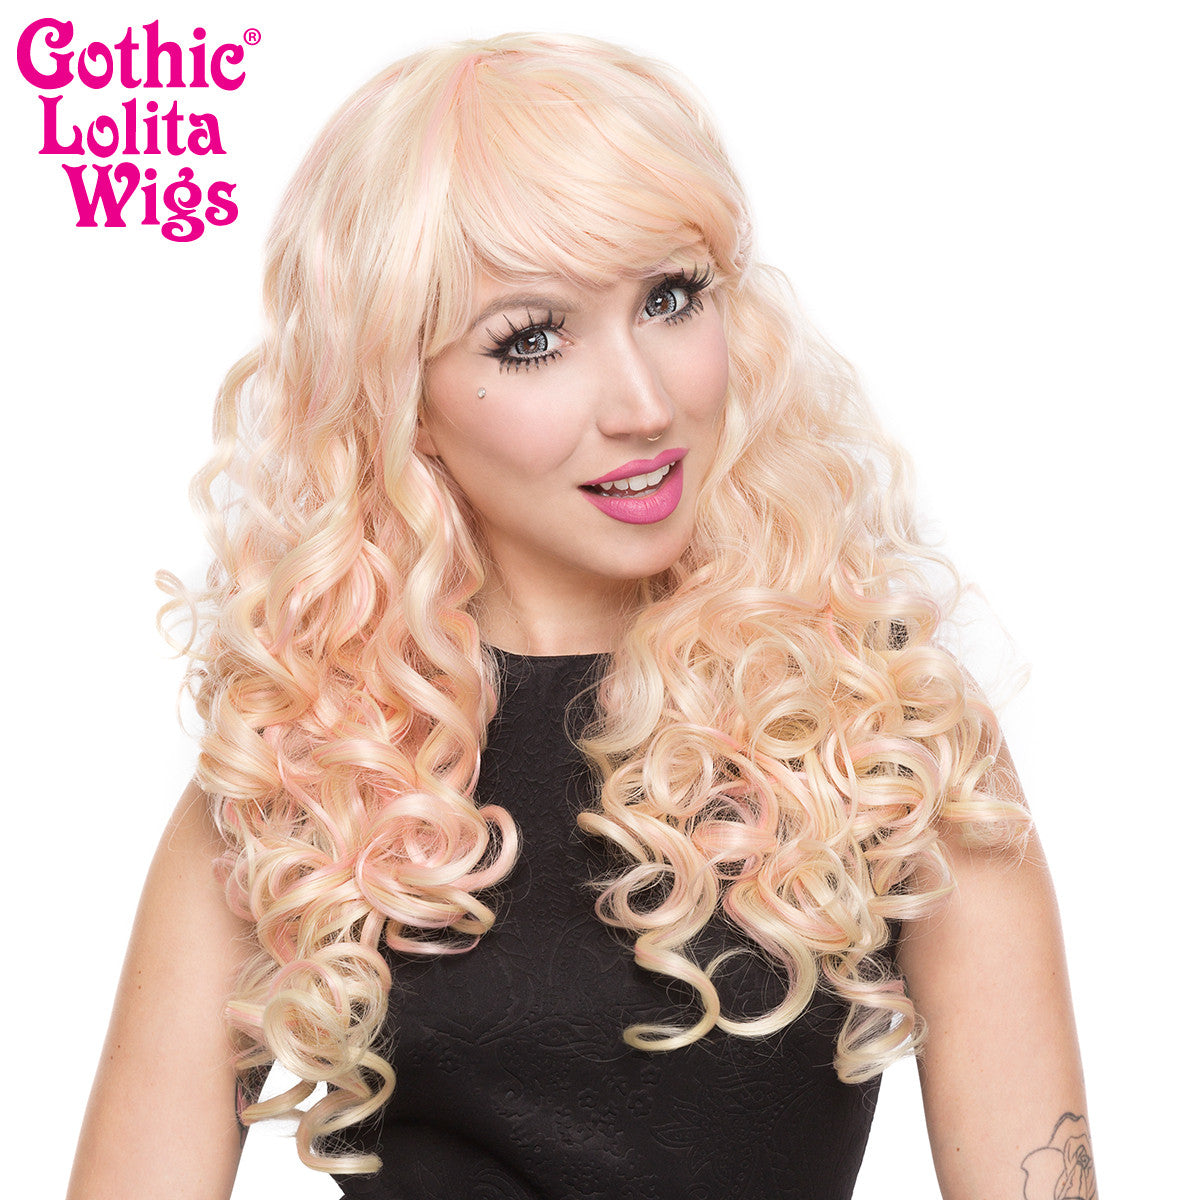 Gothic Lolita Wigs® <br> Baby Dollight™ Collection - Strawberries & Cream -00015